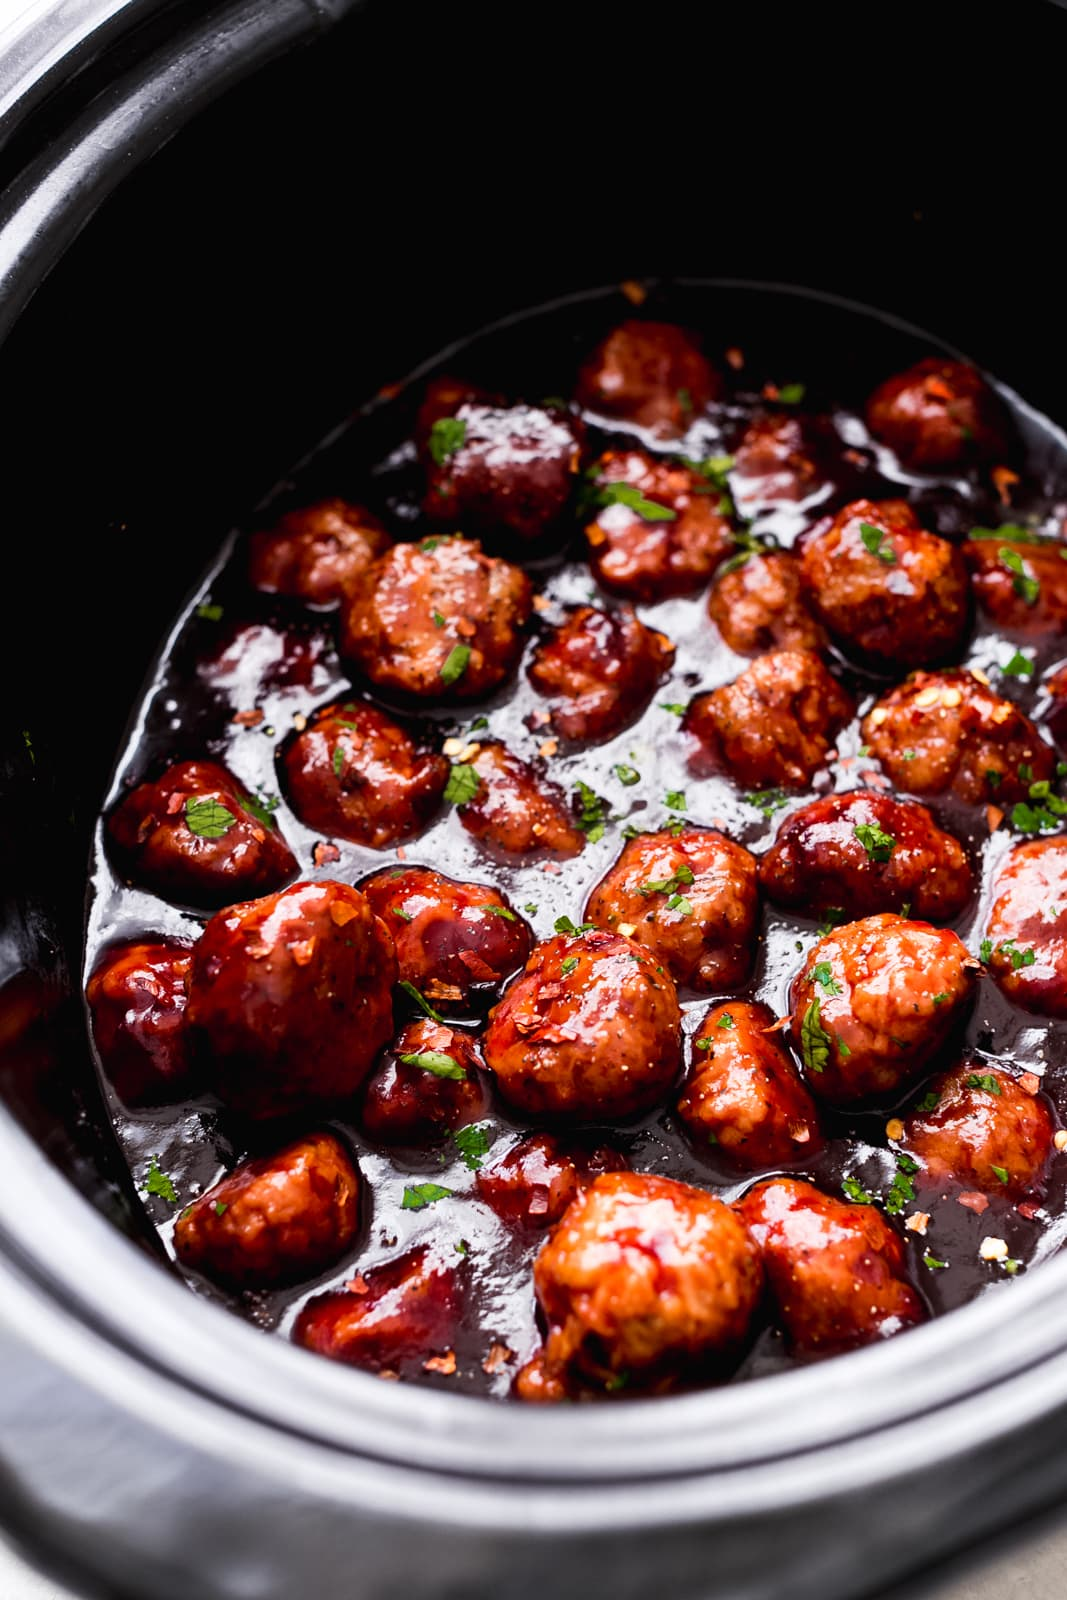 Slow Cooker Honey-Chipotle Meatballs Are a Party Win